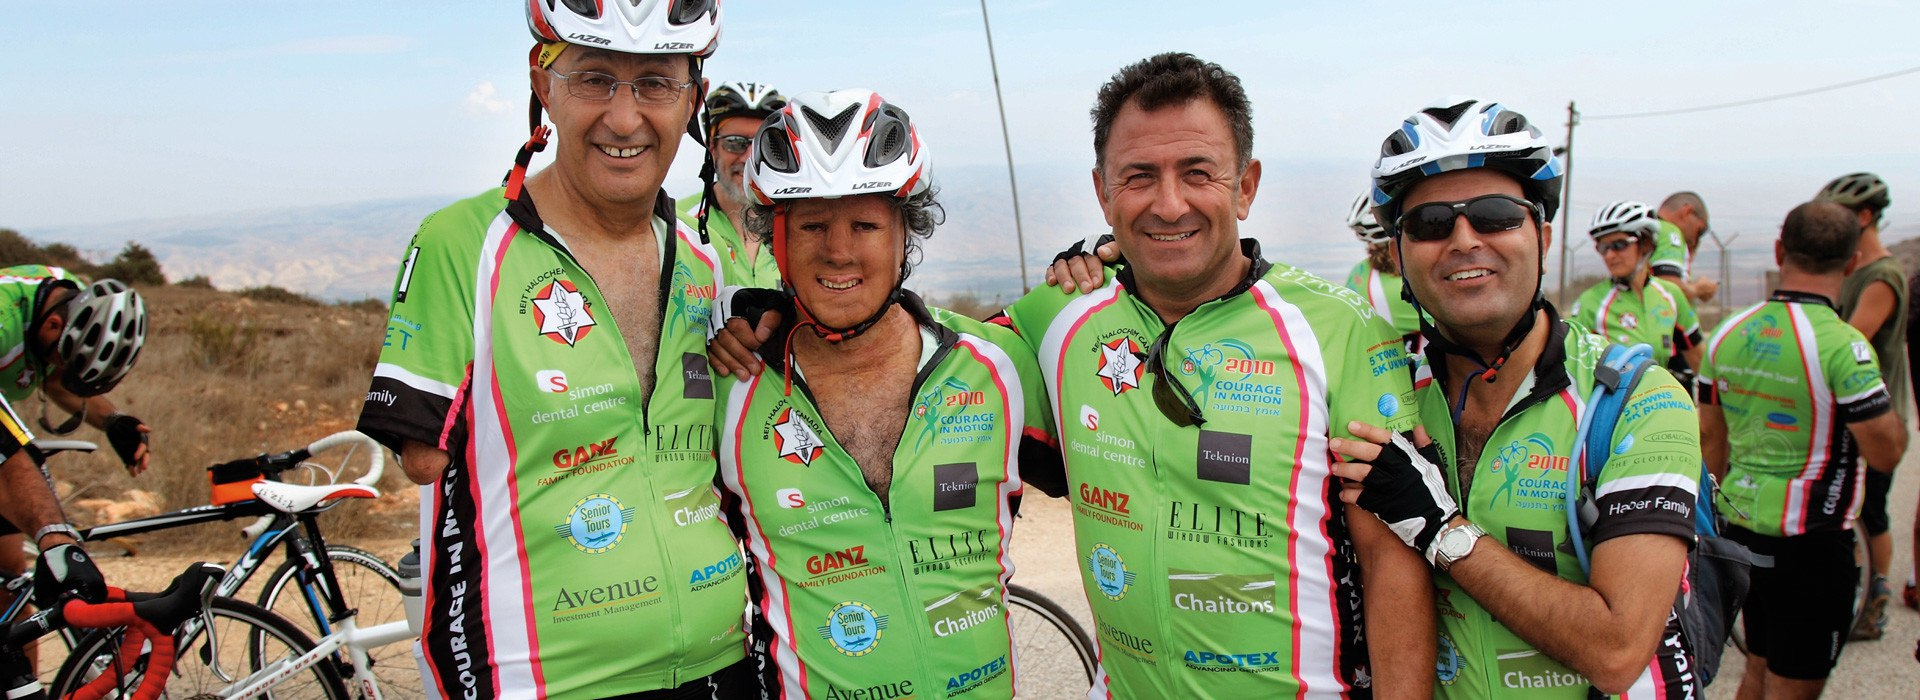 Dan Liani (right) rides with others in Beit Halochem Canada's Courage in Motion ride.